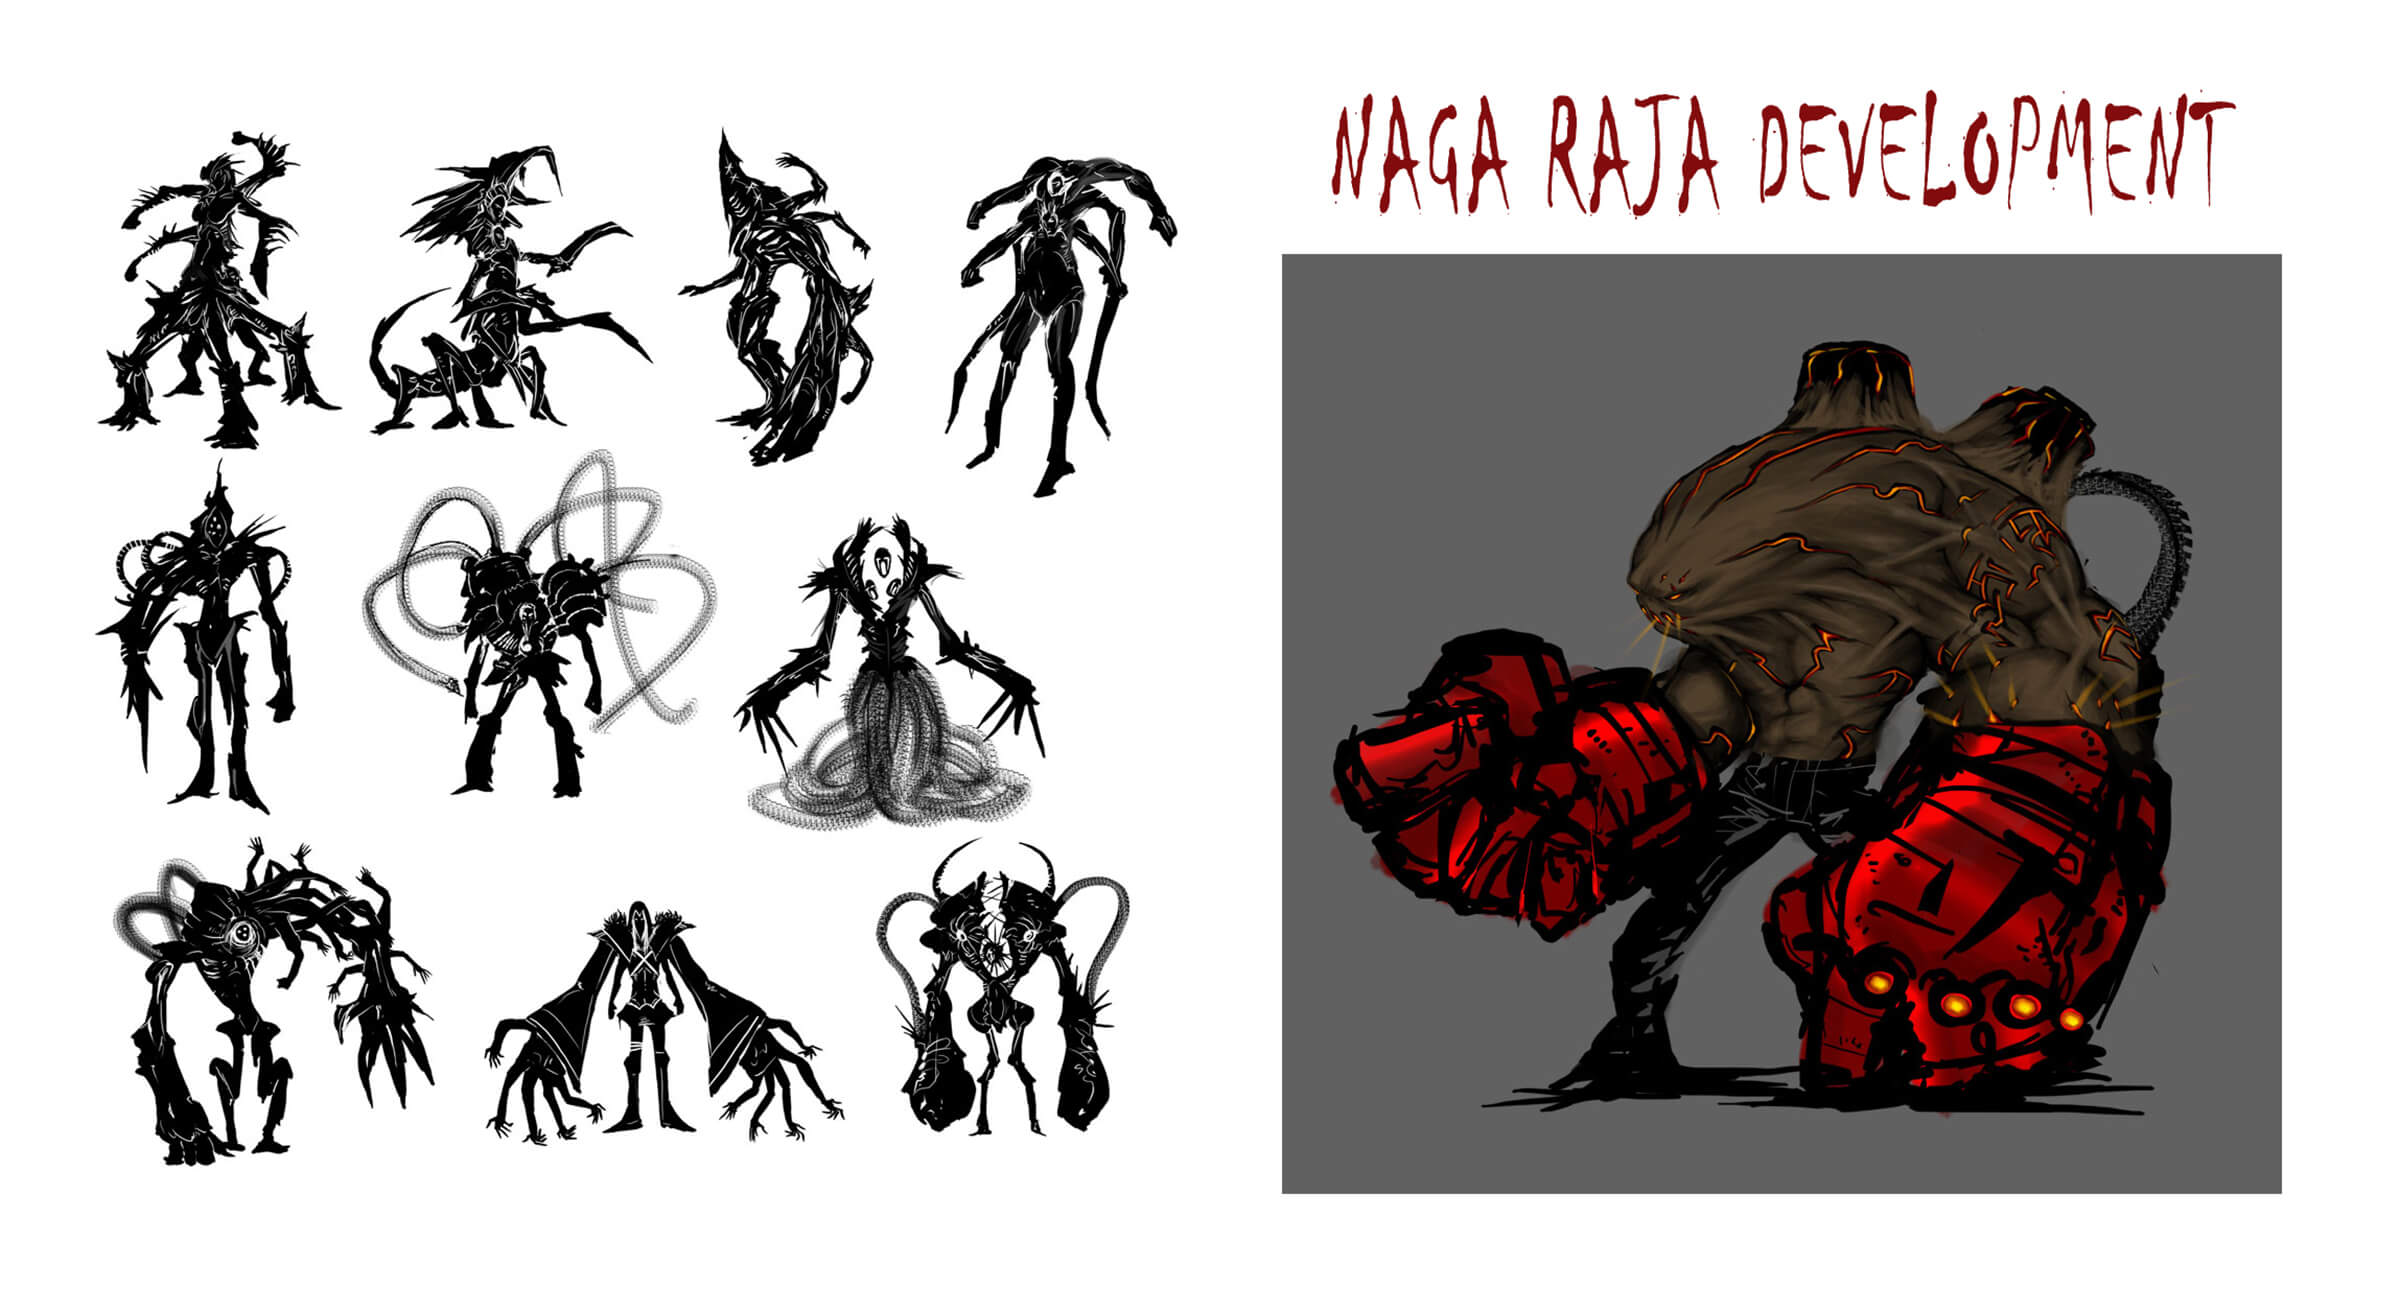 Black-and-white development sketches of an angular multi-armed/legged beast, some with cybernetic augmentations.